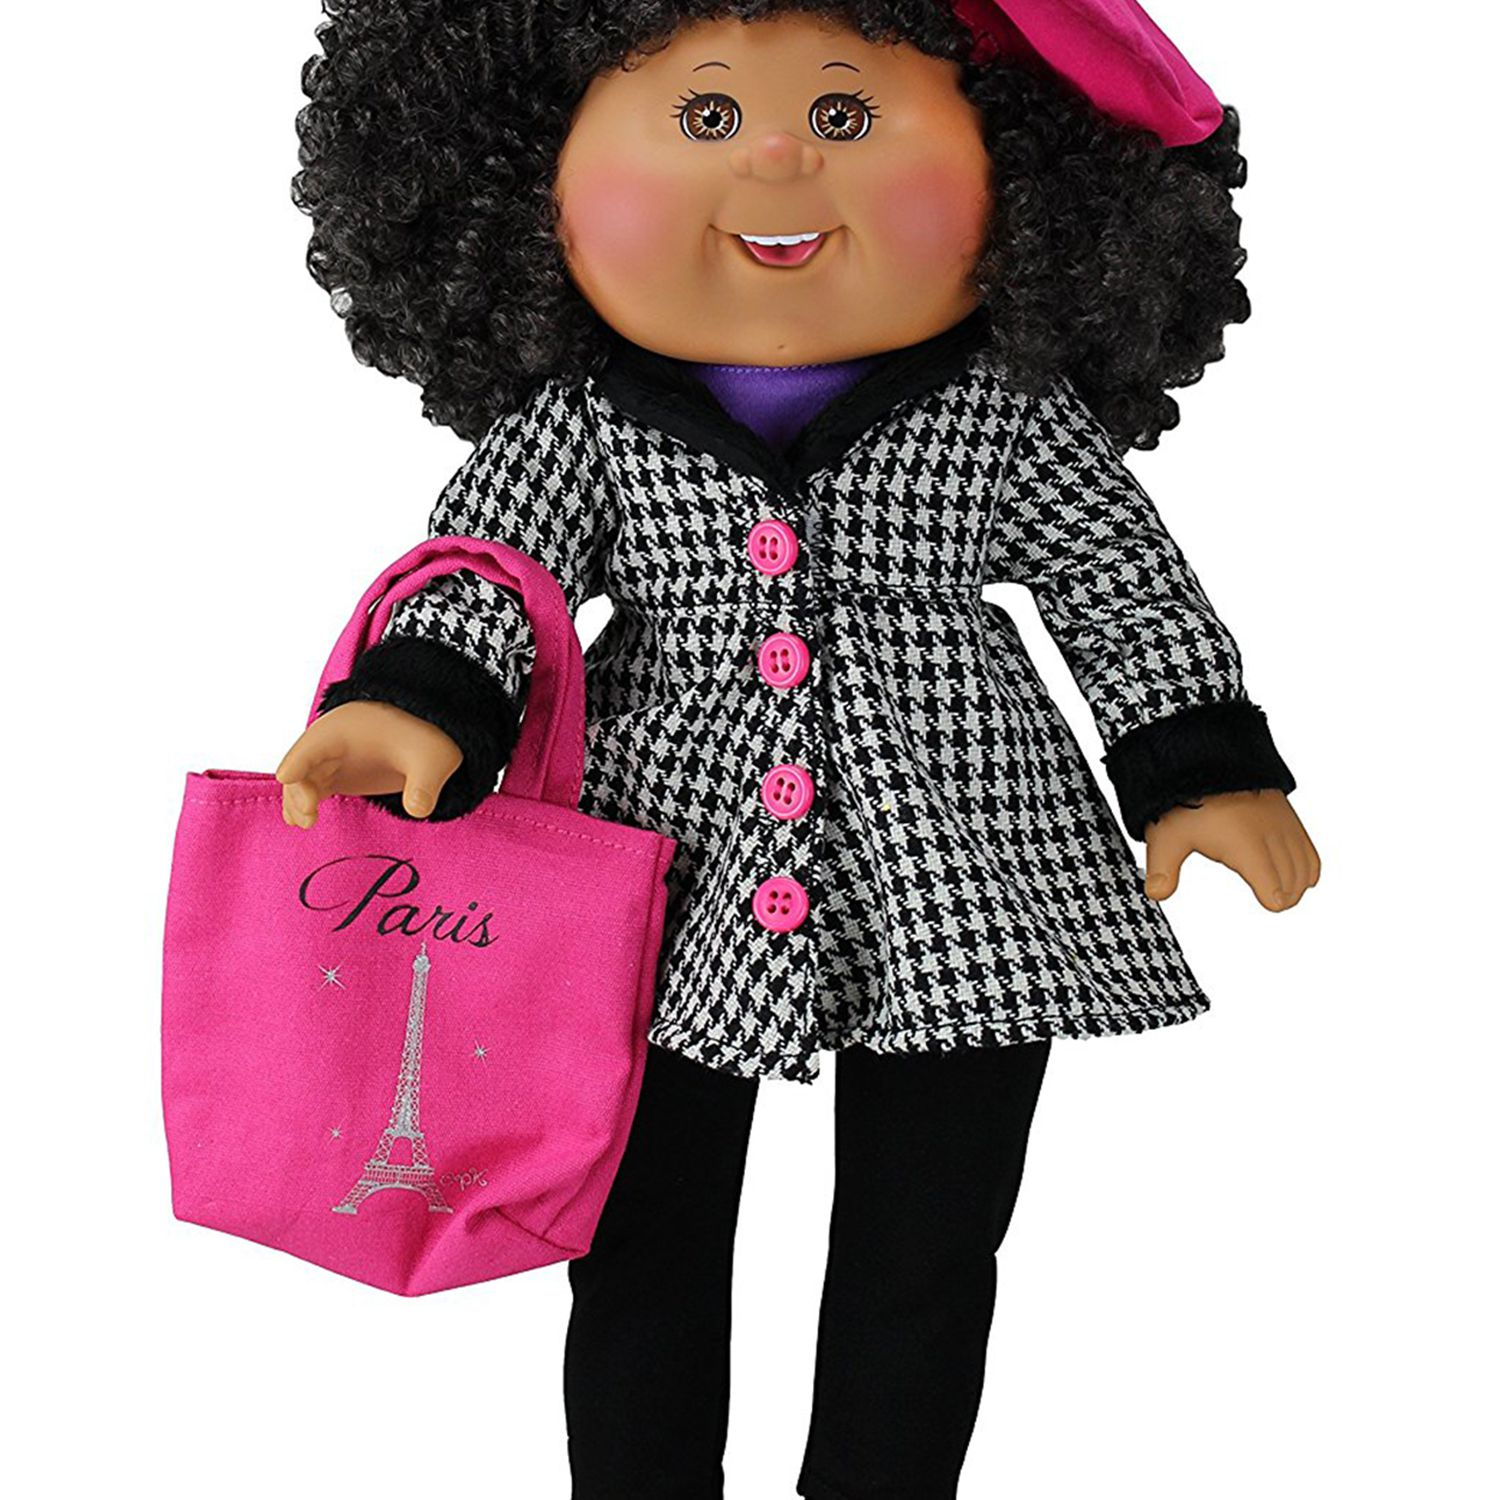 Cabbage Patch Kids Doll Profile